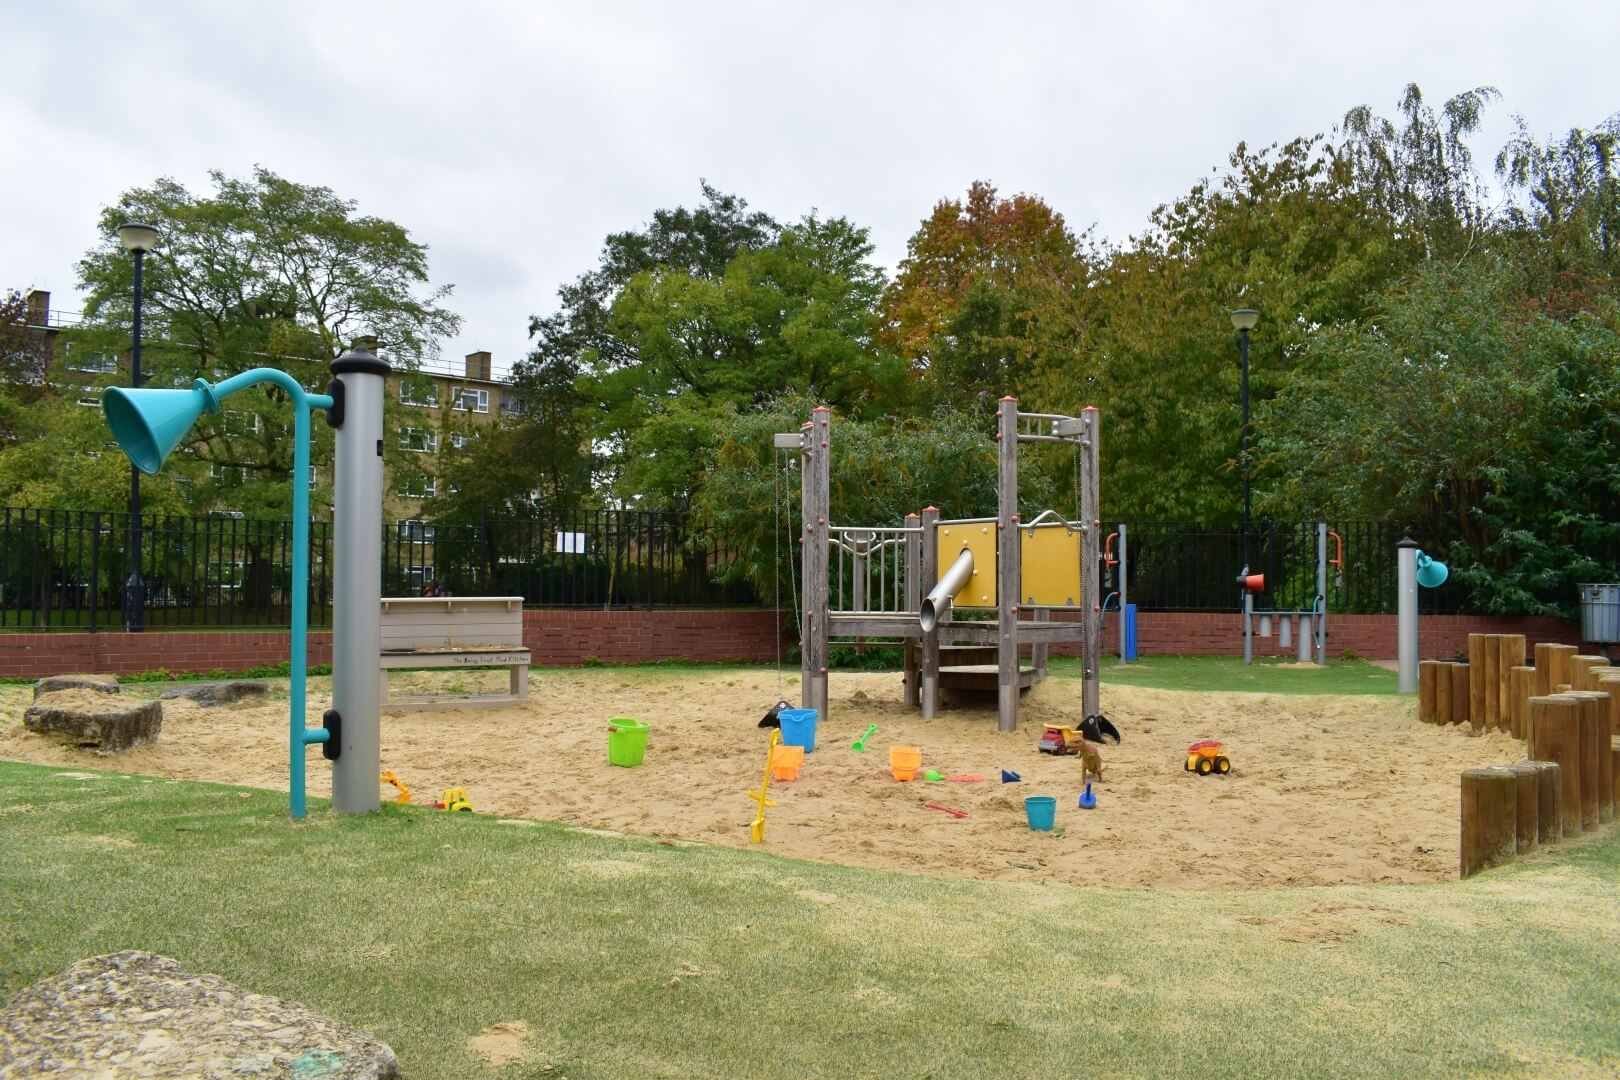 Rays Playhouse Childrens Centre Sands End Fulham (6)